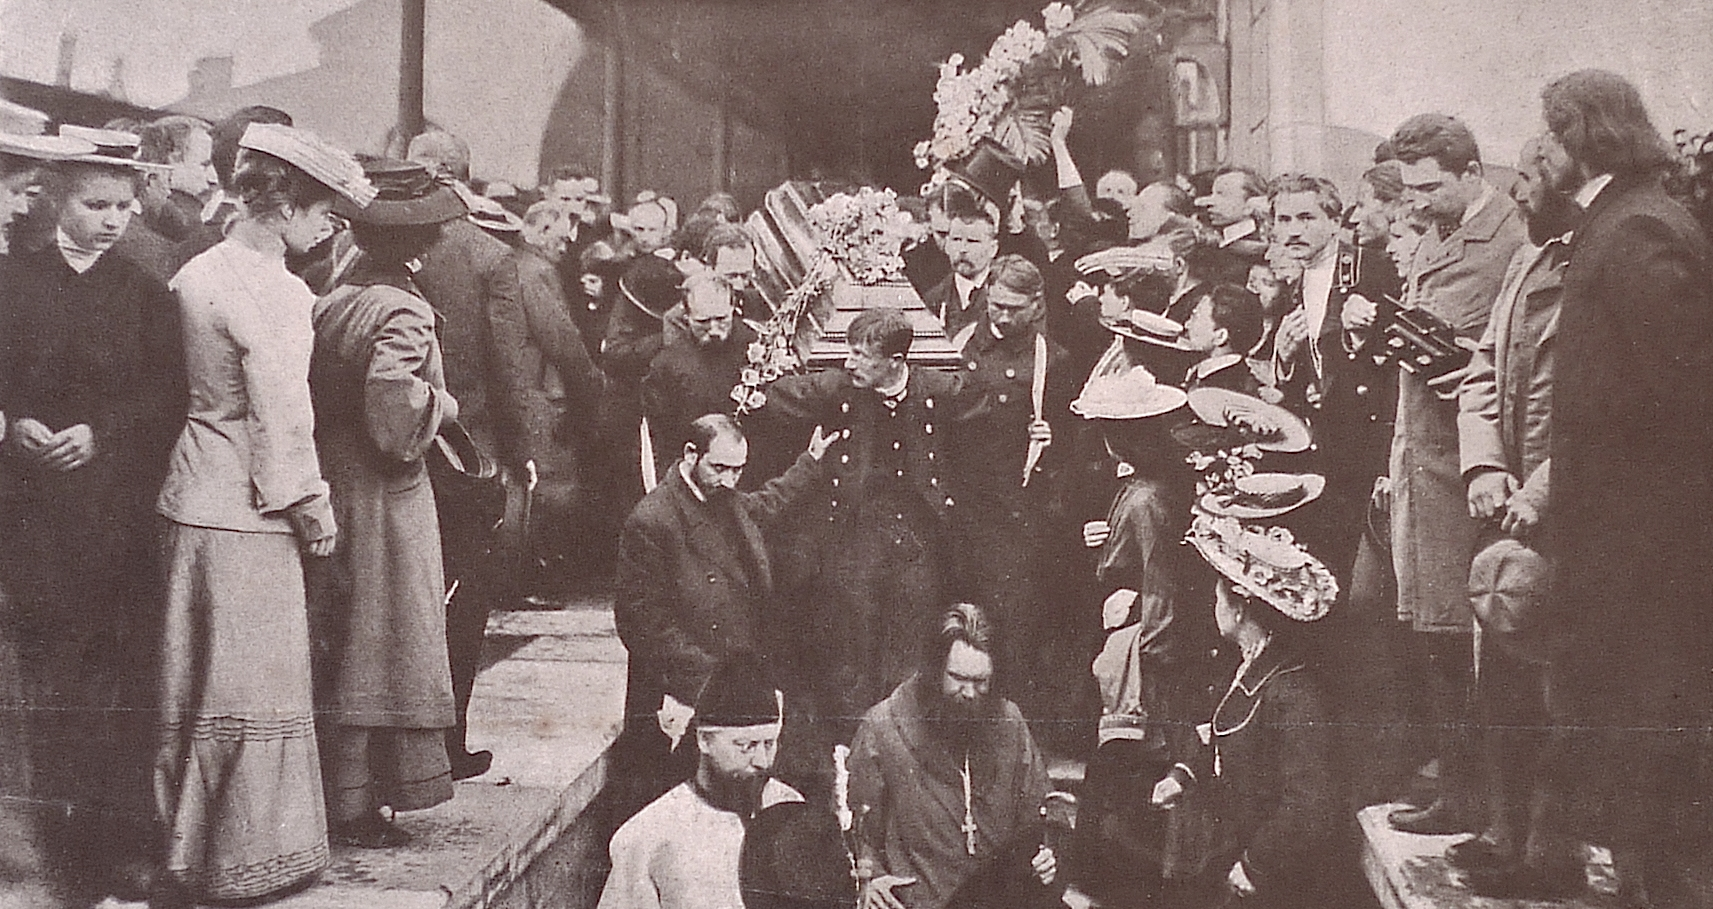 https://upload.wikimedia.org/wikipedia/commons/7/7f/Chekhov_funeral.jpg